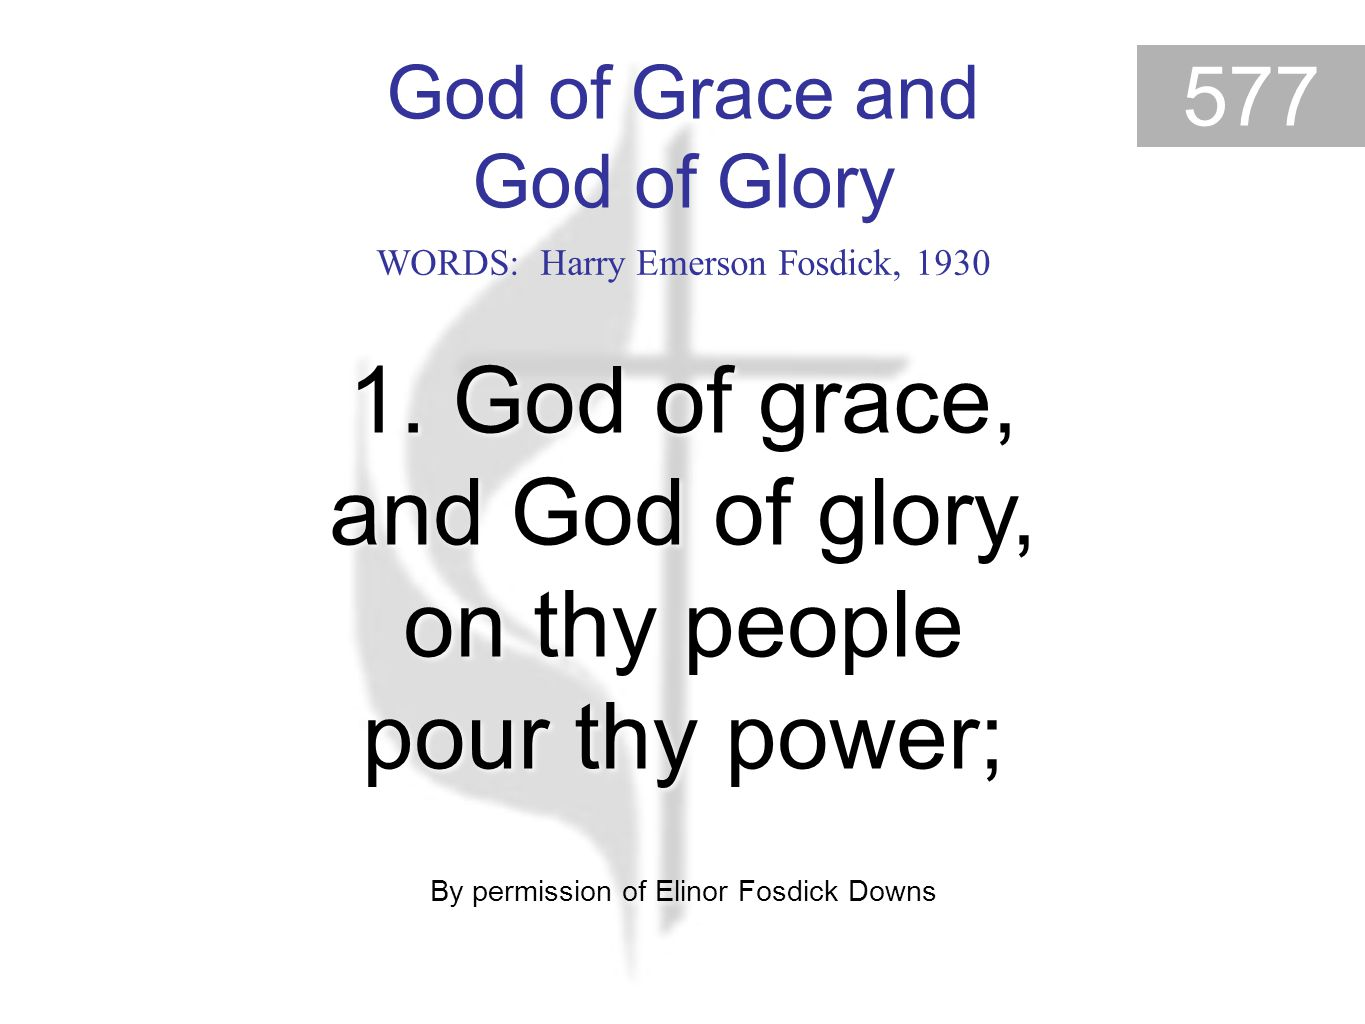 God of Grace and God of Glory 577 1. God of grace, and God of glory, on thy people pour thy power; By permission of Elinor Fosdick Downs 1. God of gra